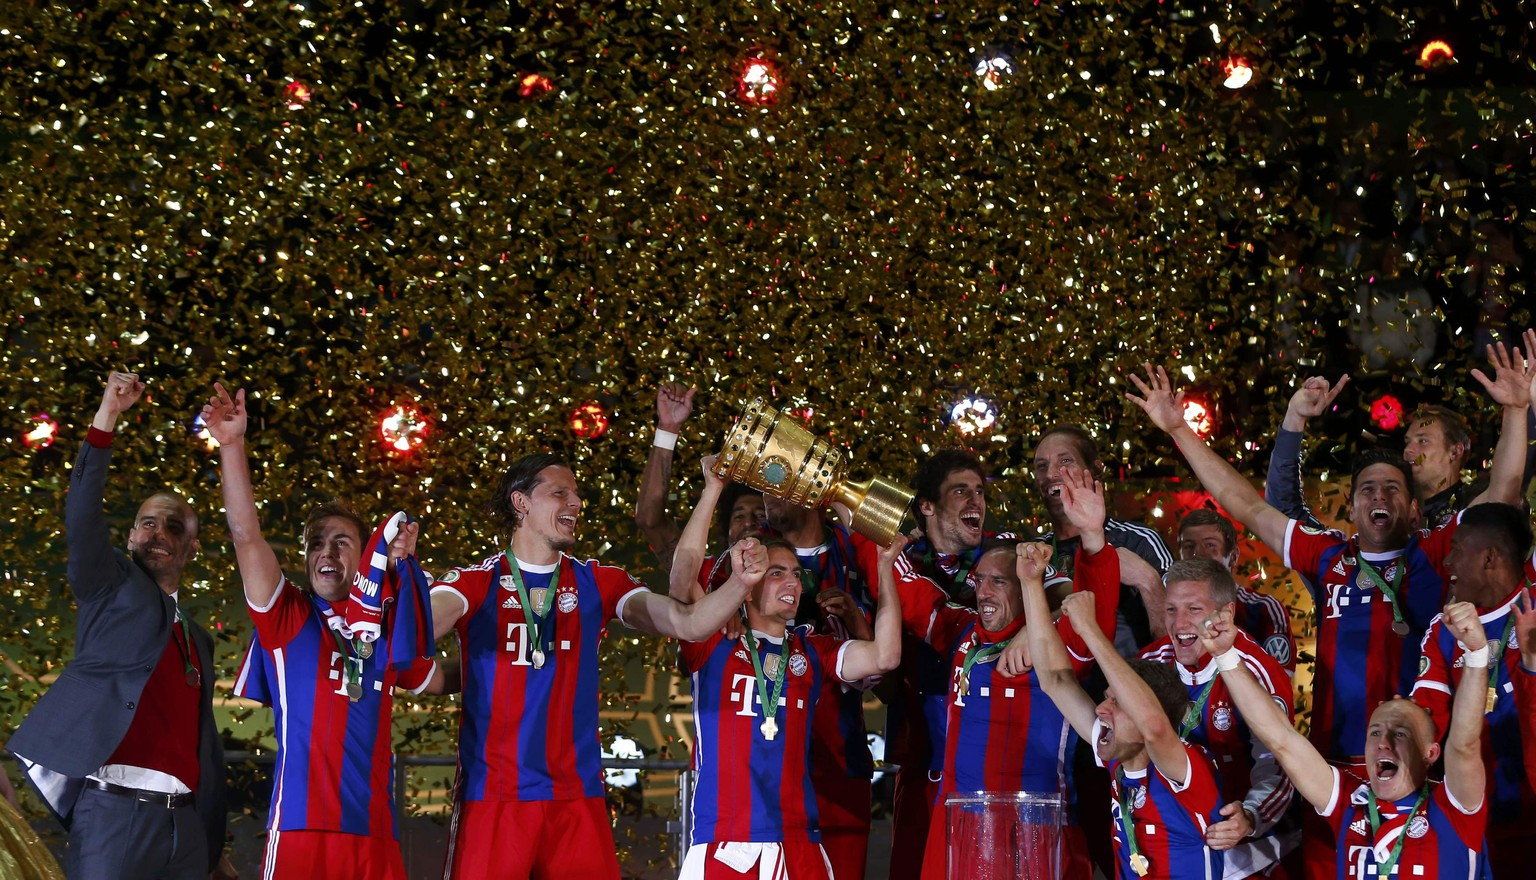 Bayern Munich's captain Philipp Lahm lifts up the trophy as the team celebrates after their German Cup (DFB Pokal) final soccer match against Borussia Dortmund in Berlin May 17, 2014.   REUTERS/Michael Dalder (GERMANY  - Tags: SPORT SOCCER) DFB RULES PROHIBIT USE IN MMS SERVICES VIA HANDHELD DEVICES UNTIL TWO HOURS AFTER A MATCH AND ANY USAGE ON INTERNET OR ONLINE MEDIA SIMULATING VIDEO FOOTAGE DURING THE MATCH.